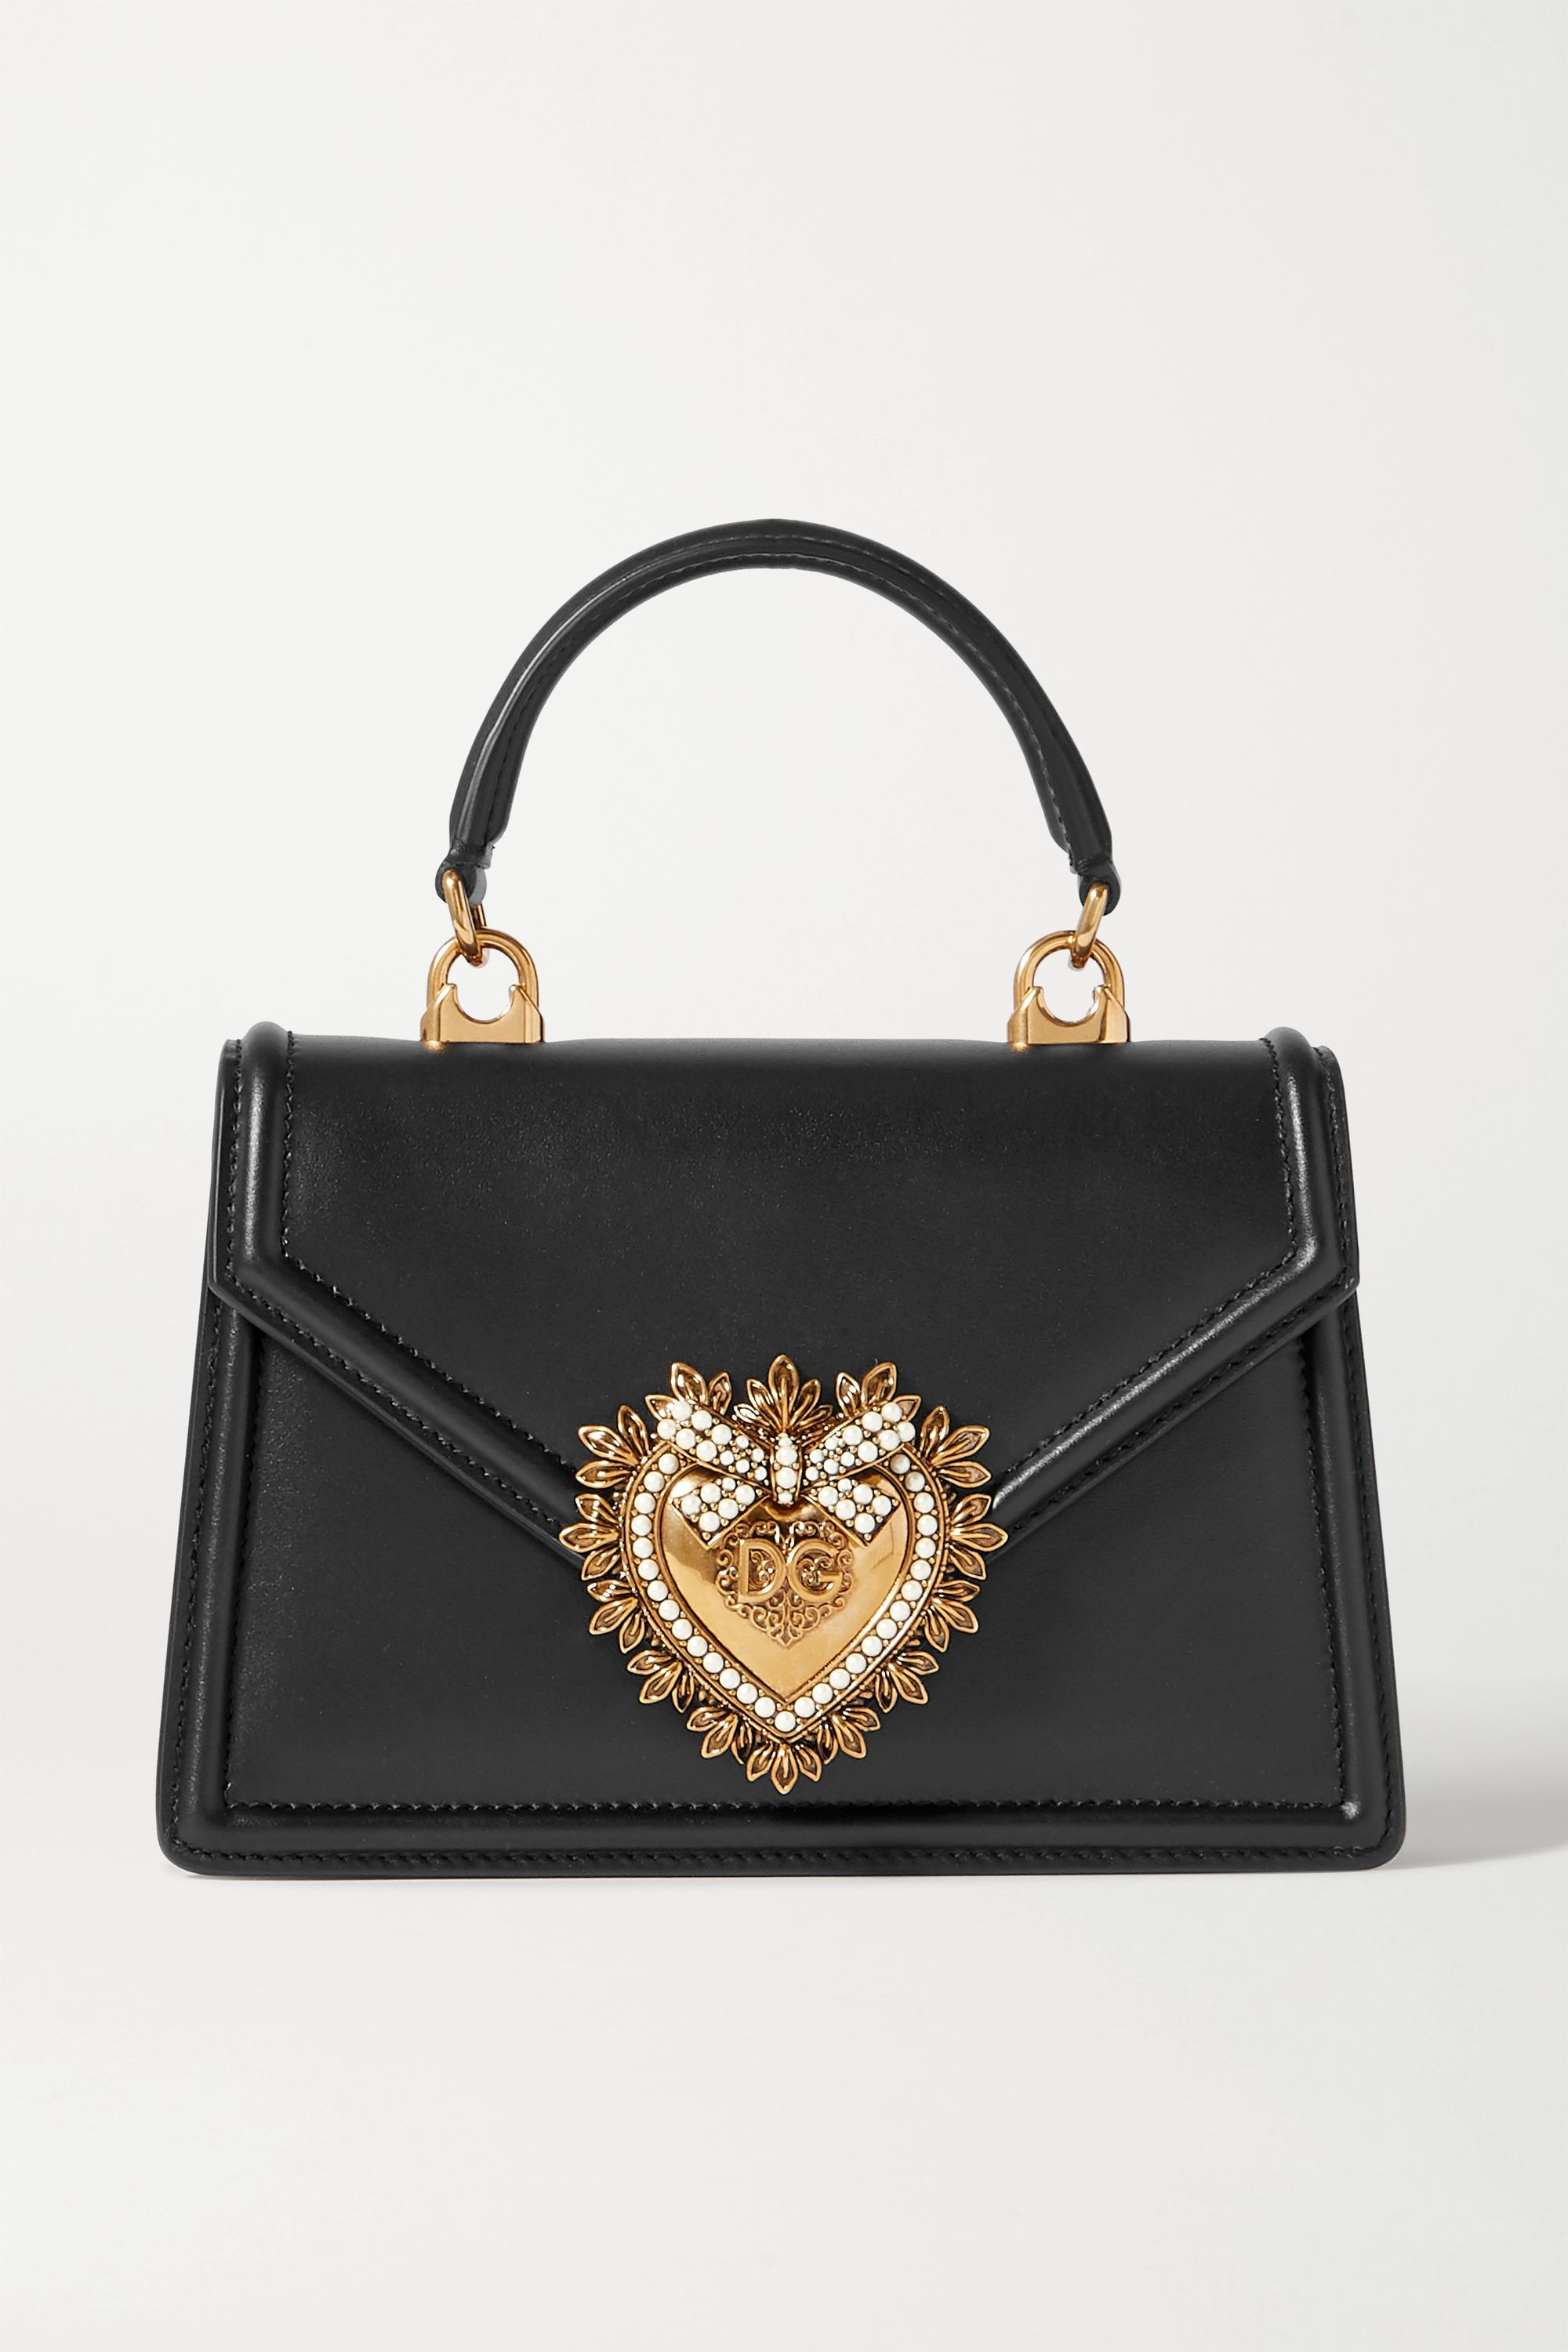 Dolce & Gabbana Devotion mini embellished leather tote